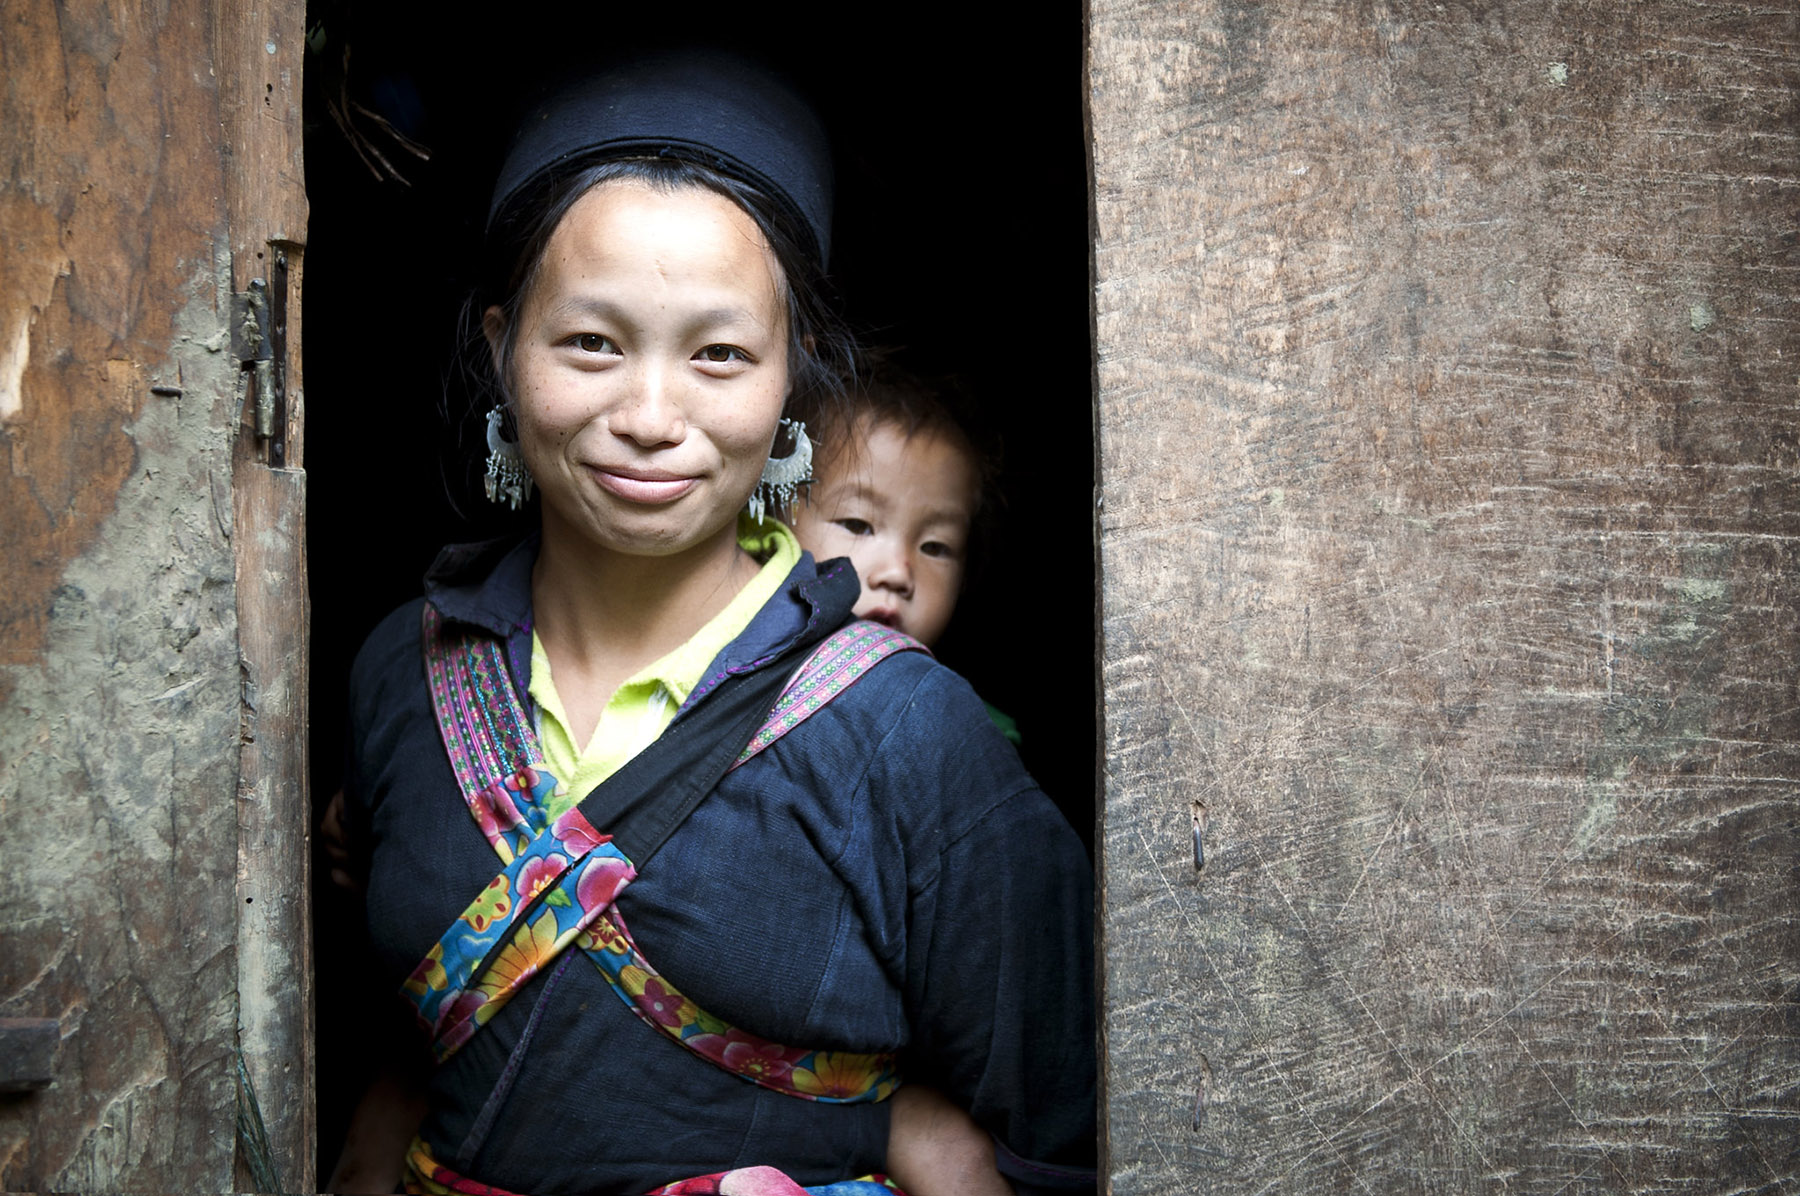 Hmong woman and baby